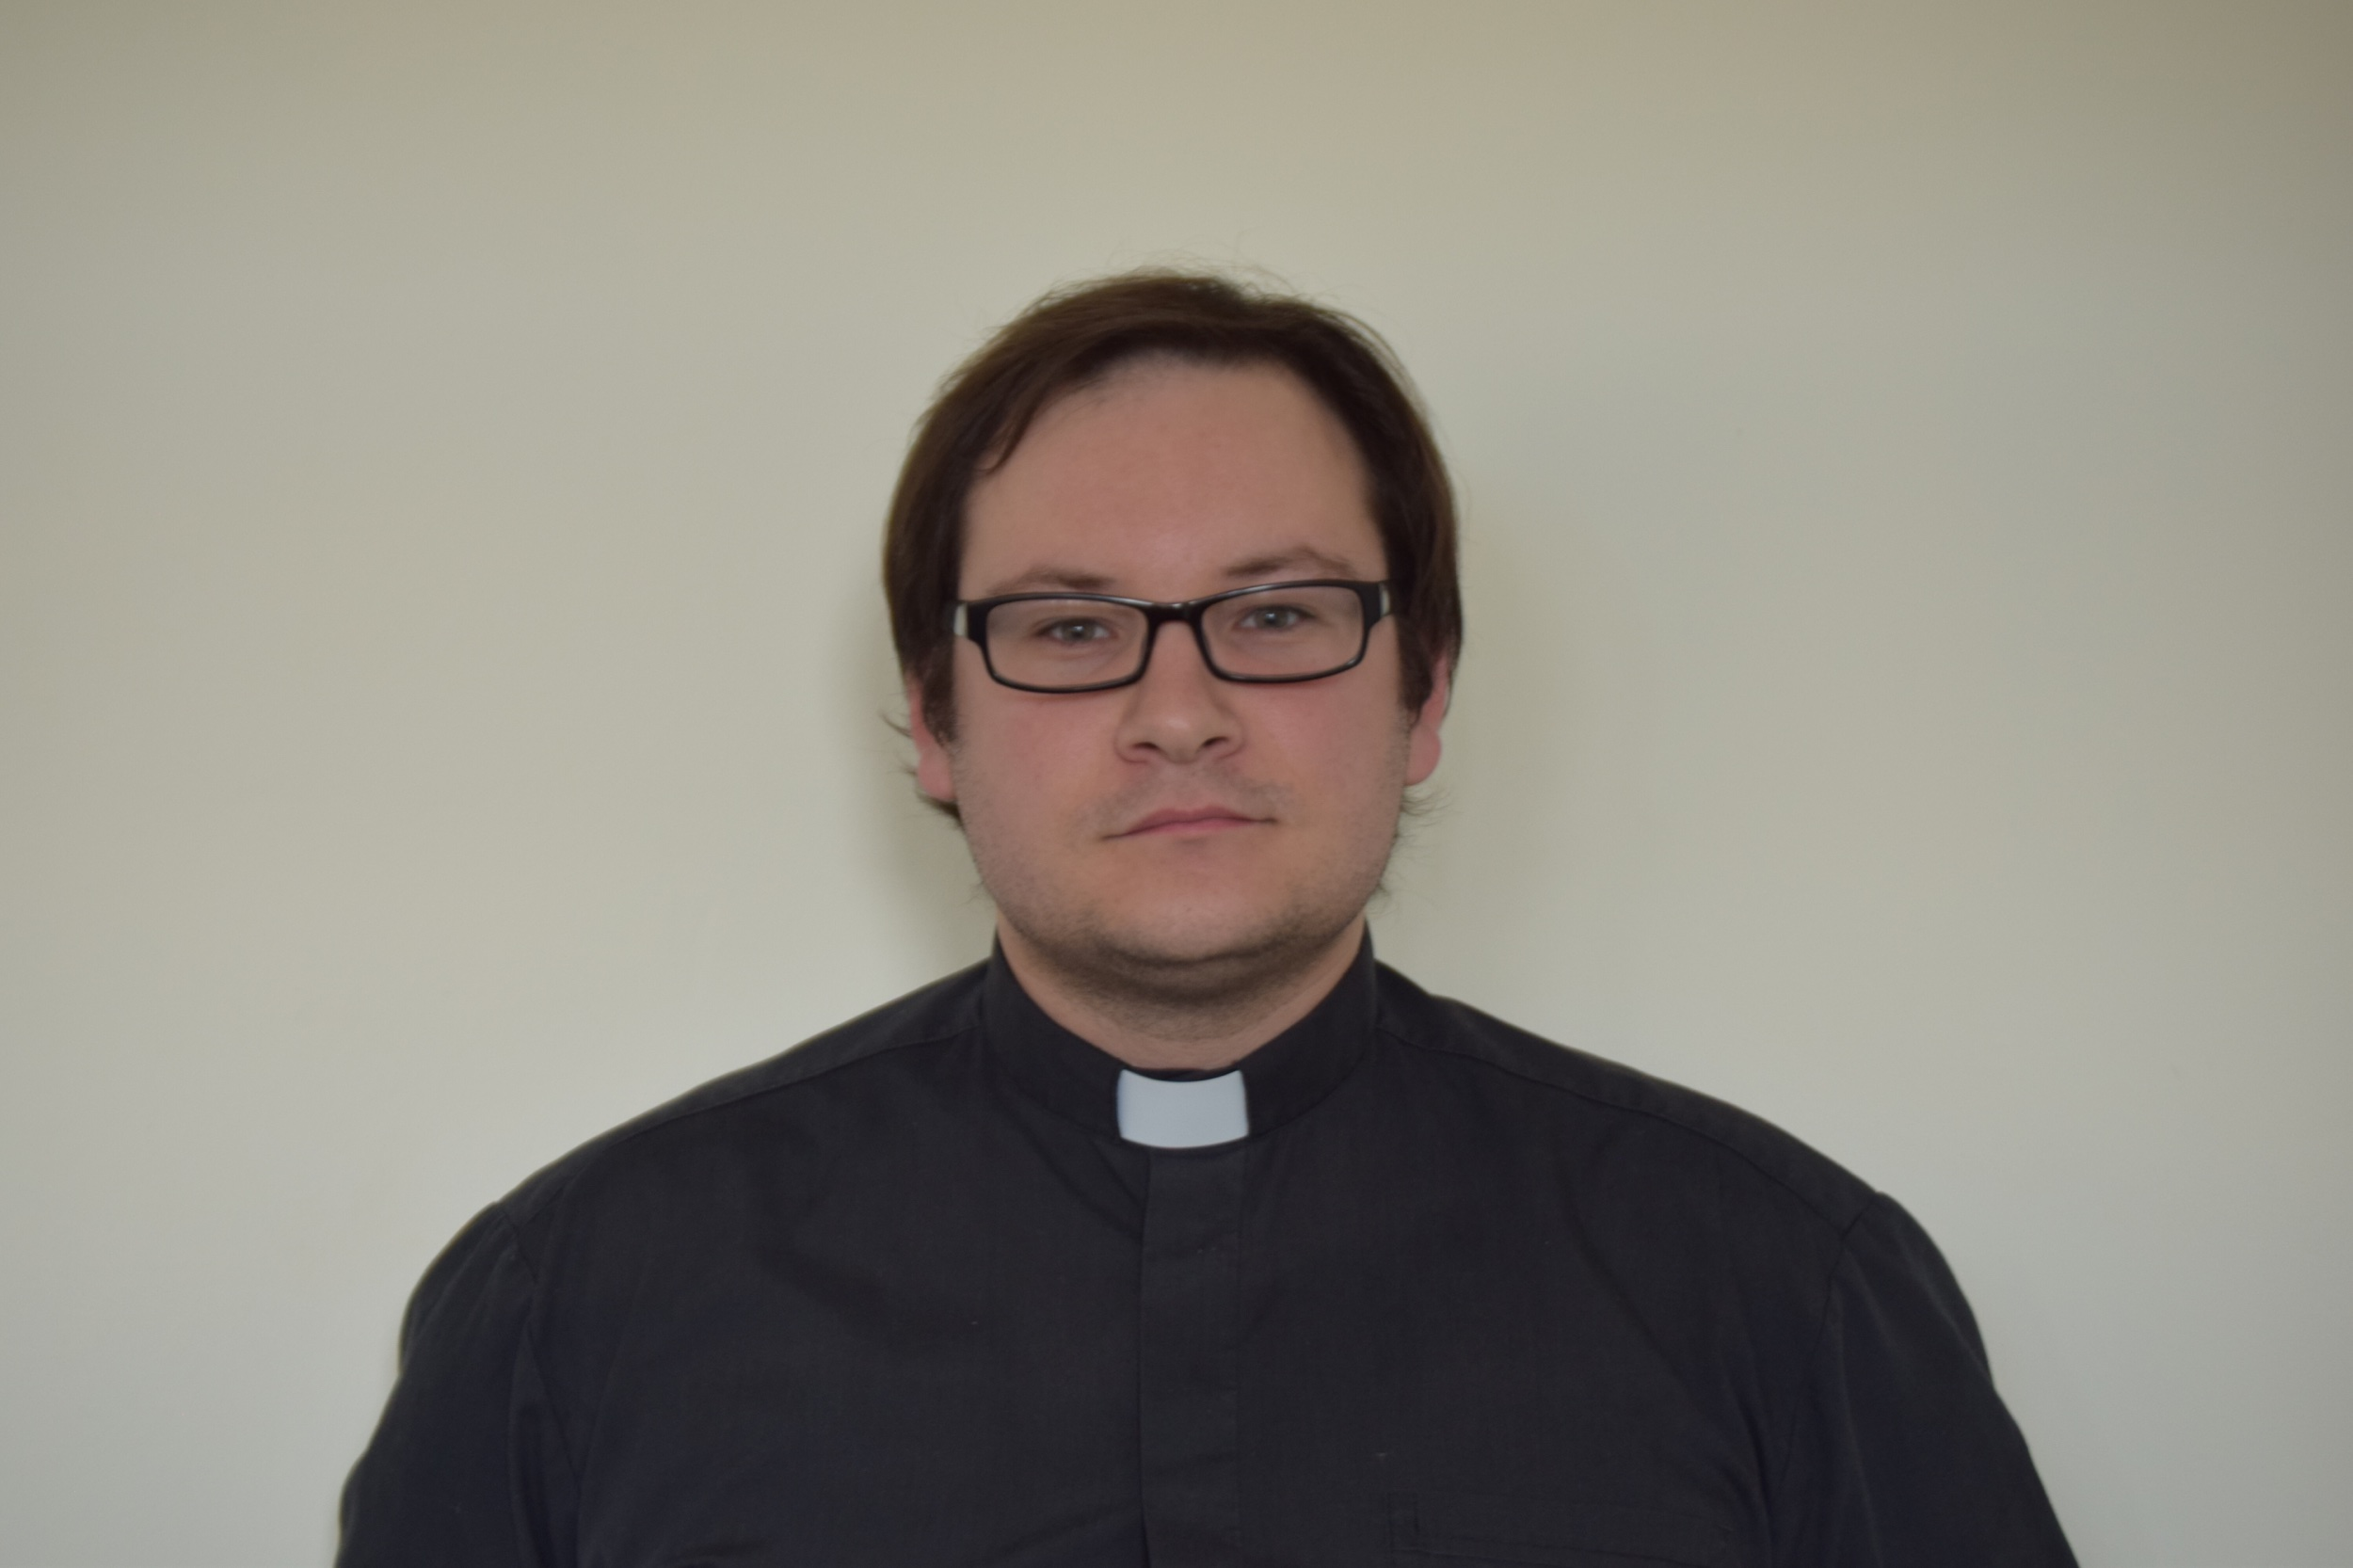 Fr Stephen Parker  St John the Baptist (Leamington)  priest@stjohnsleamingtonspa.org.uk